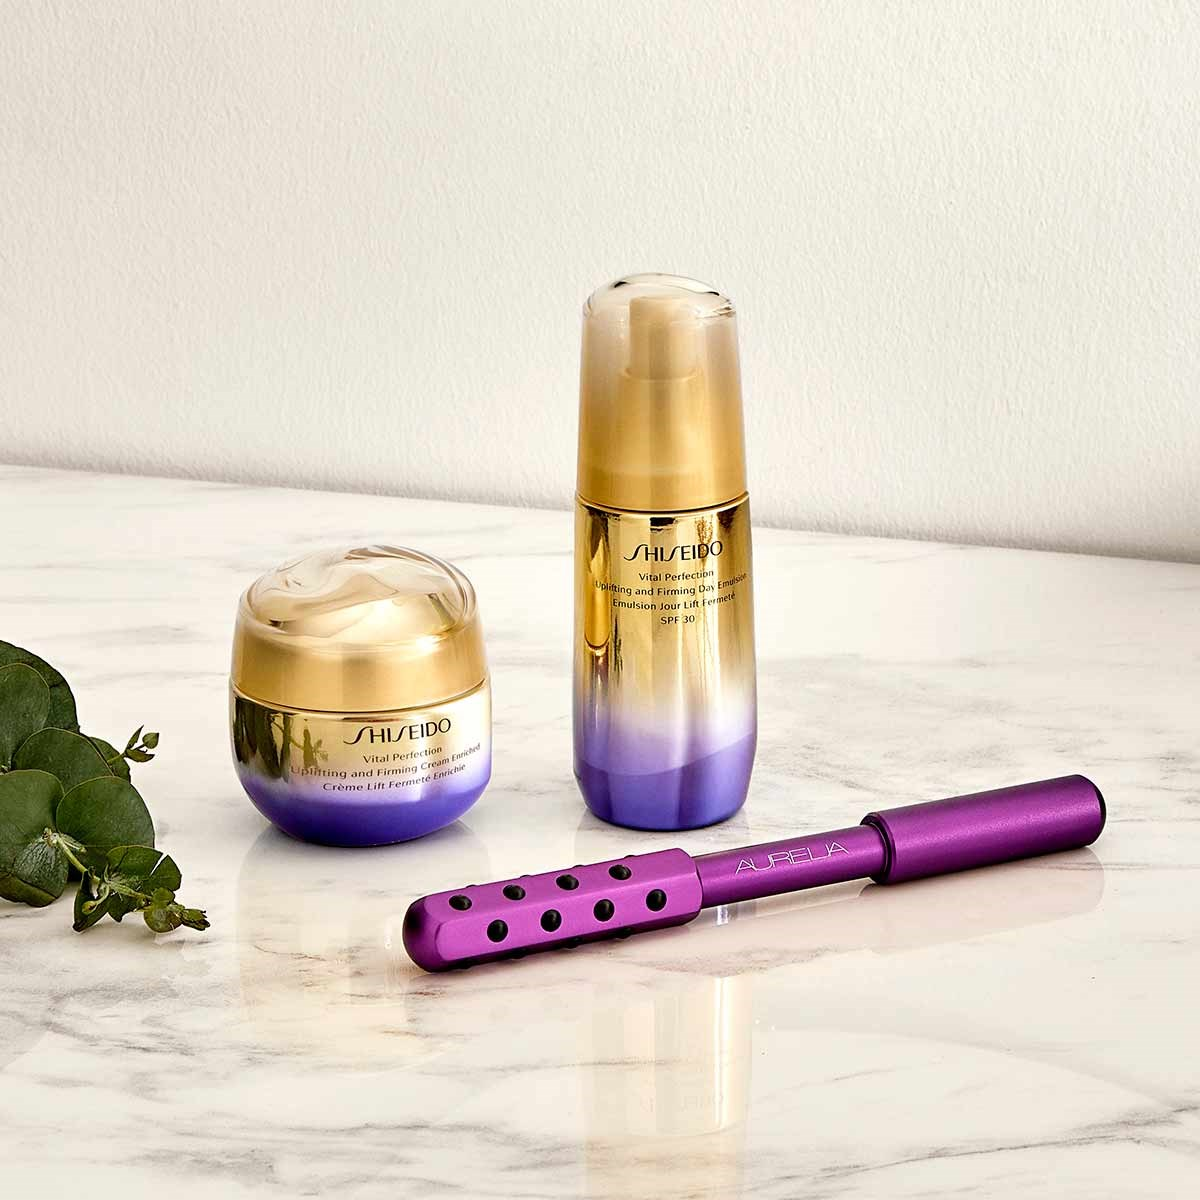 FACE AND BODY BEAUTY GERMANIUM ROLLER 4